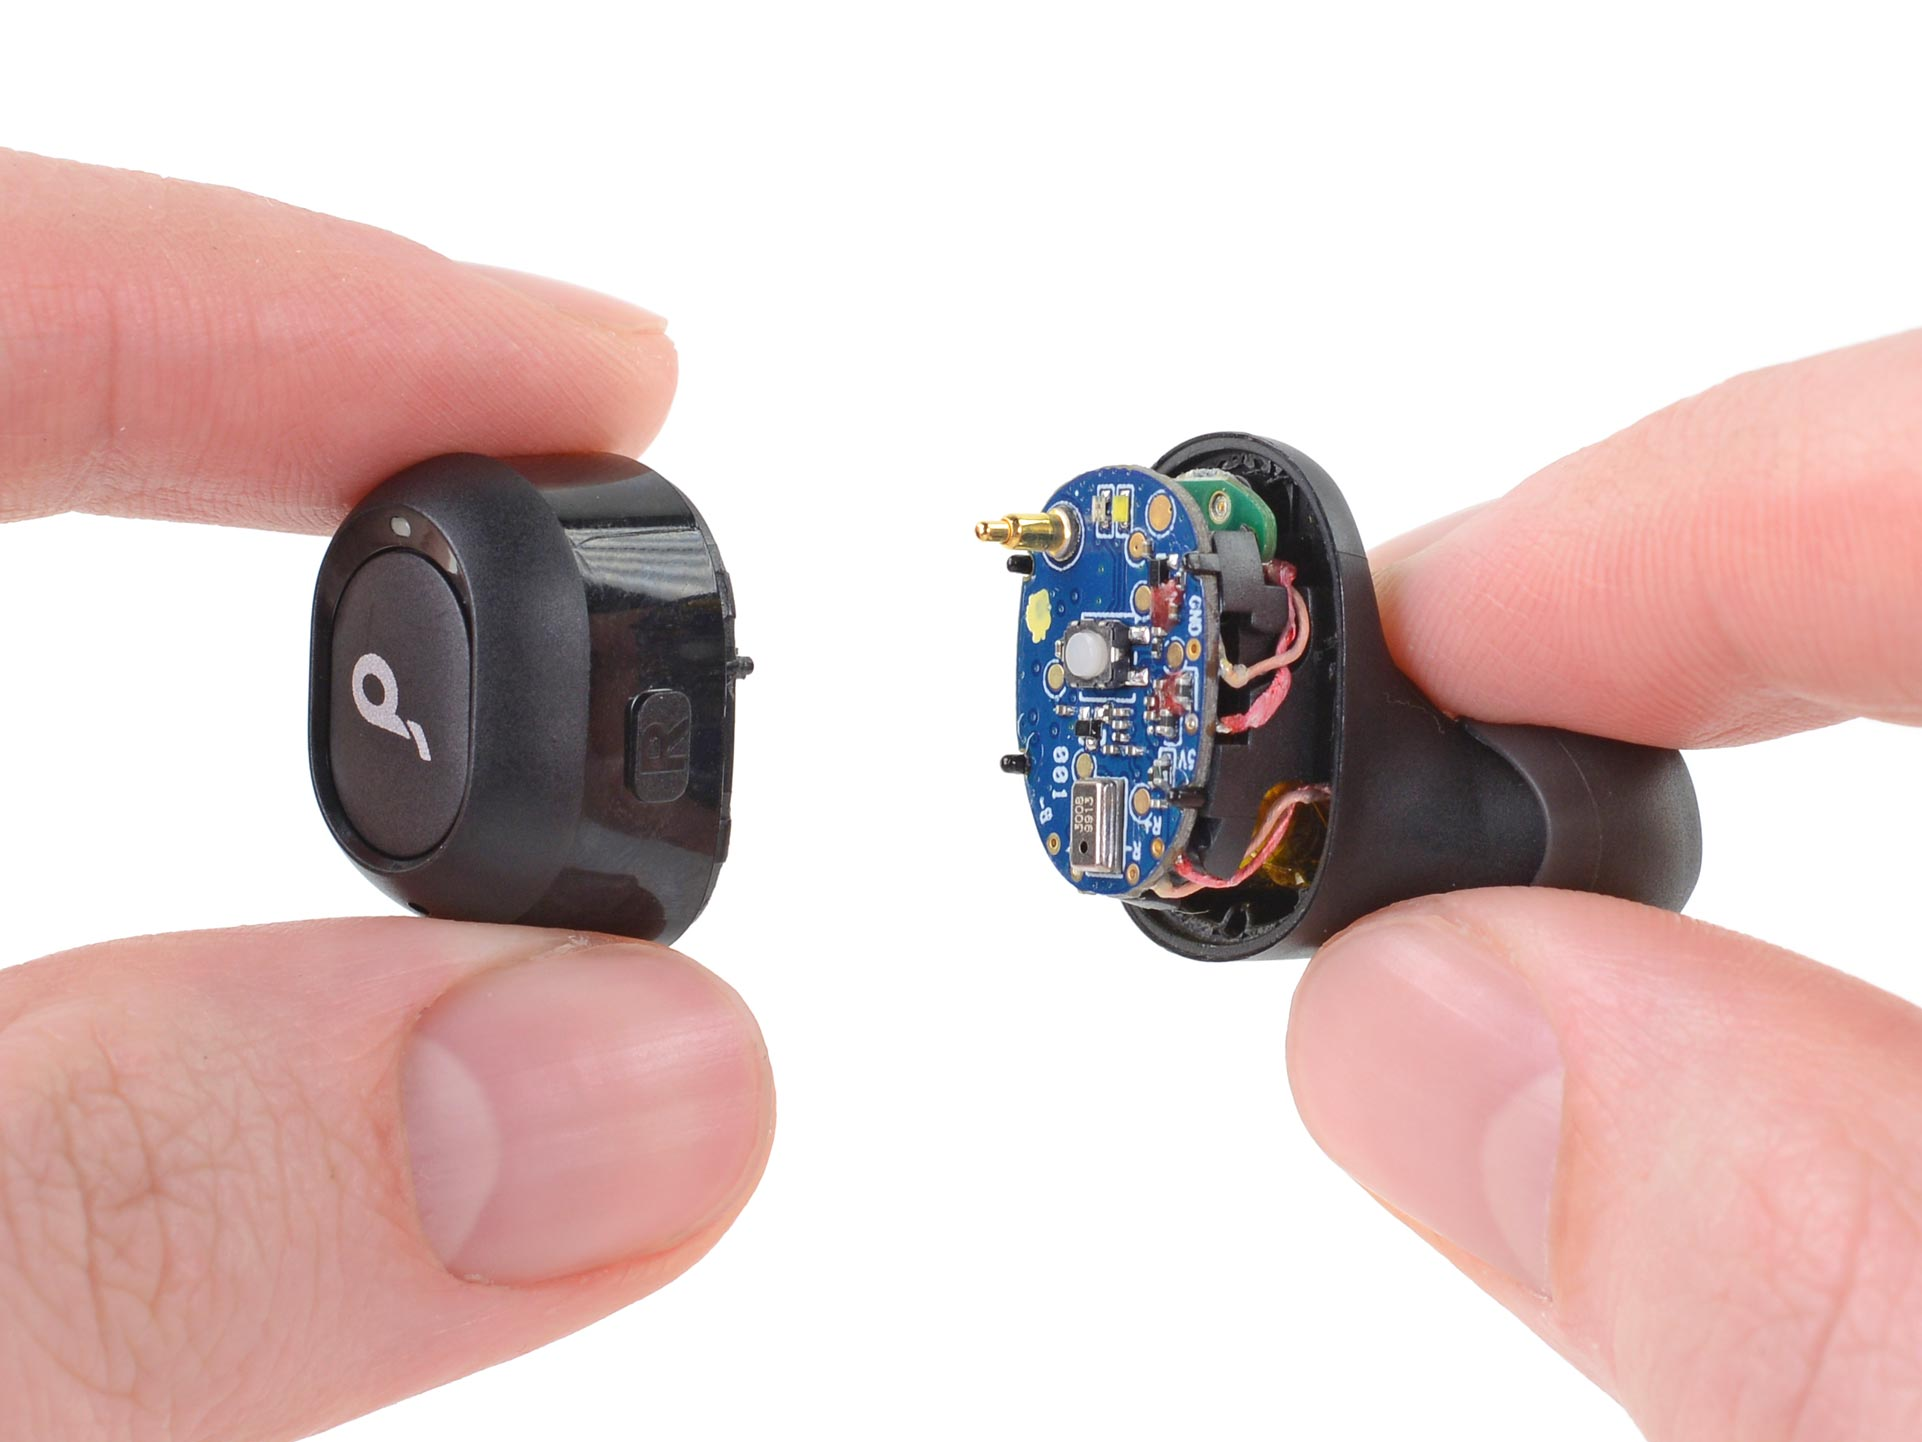 Opening up one of the Anker Liberty Neo Buds